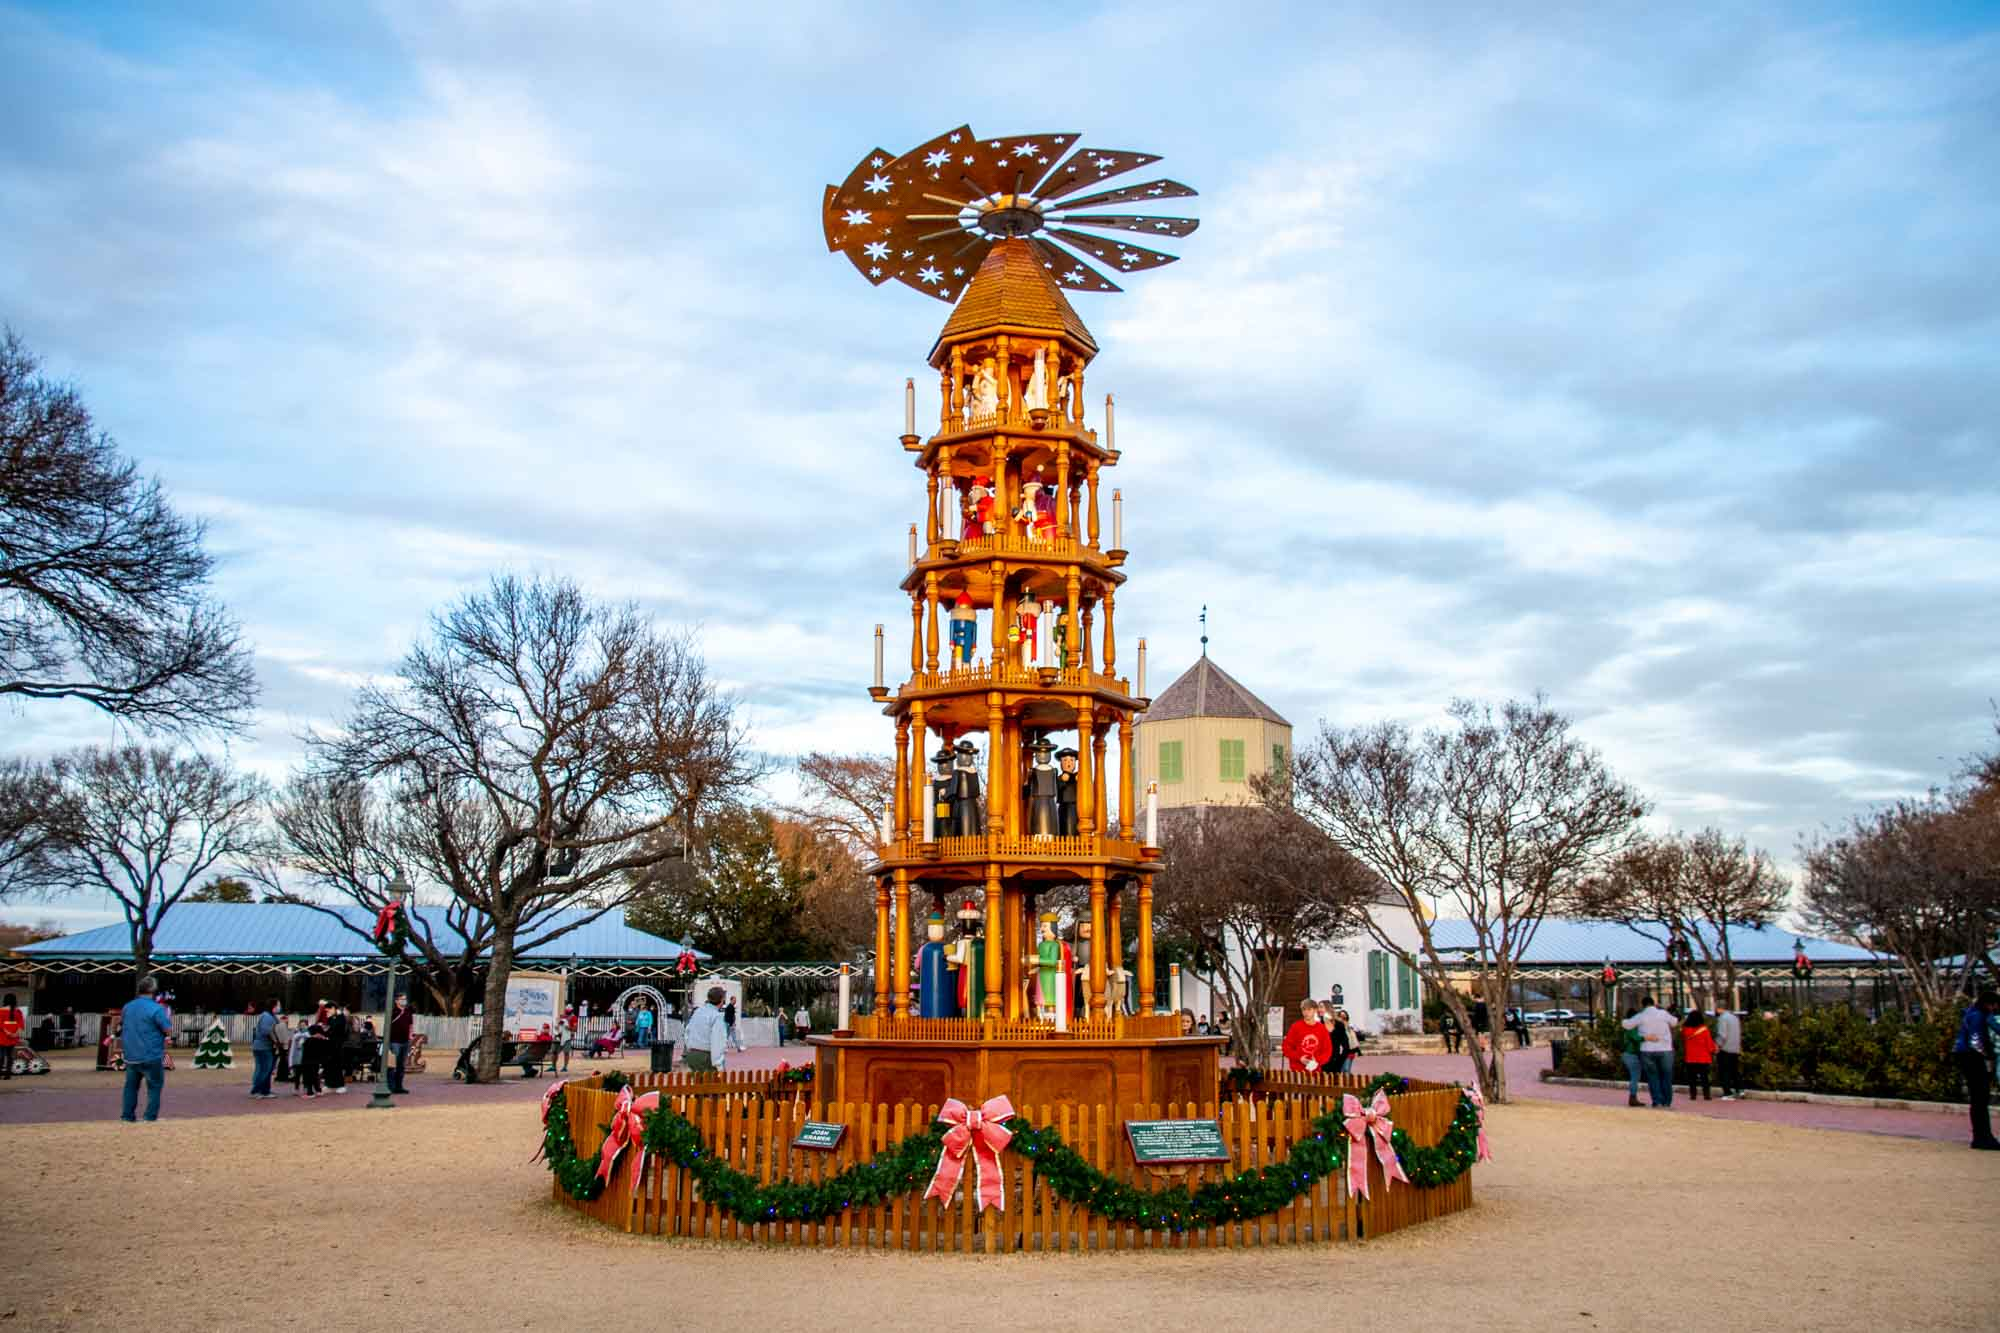 German Christmas pyramid with propeller top